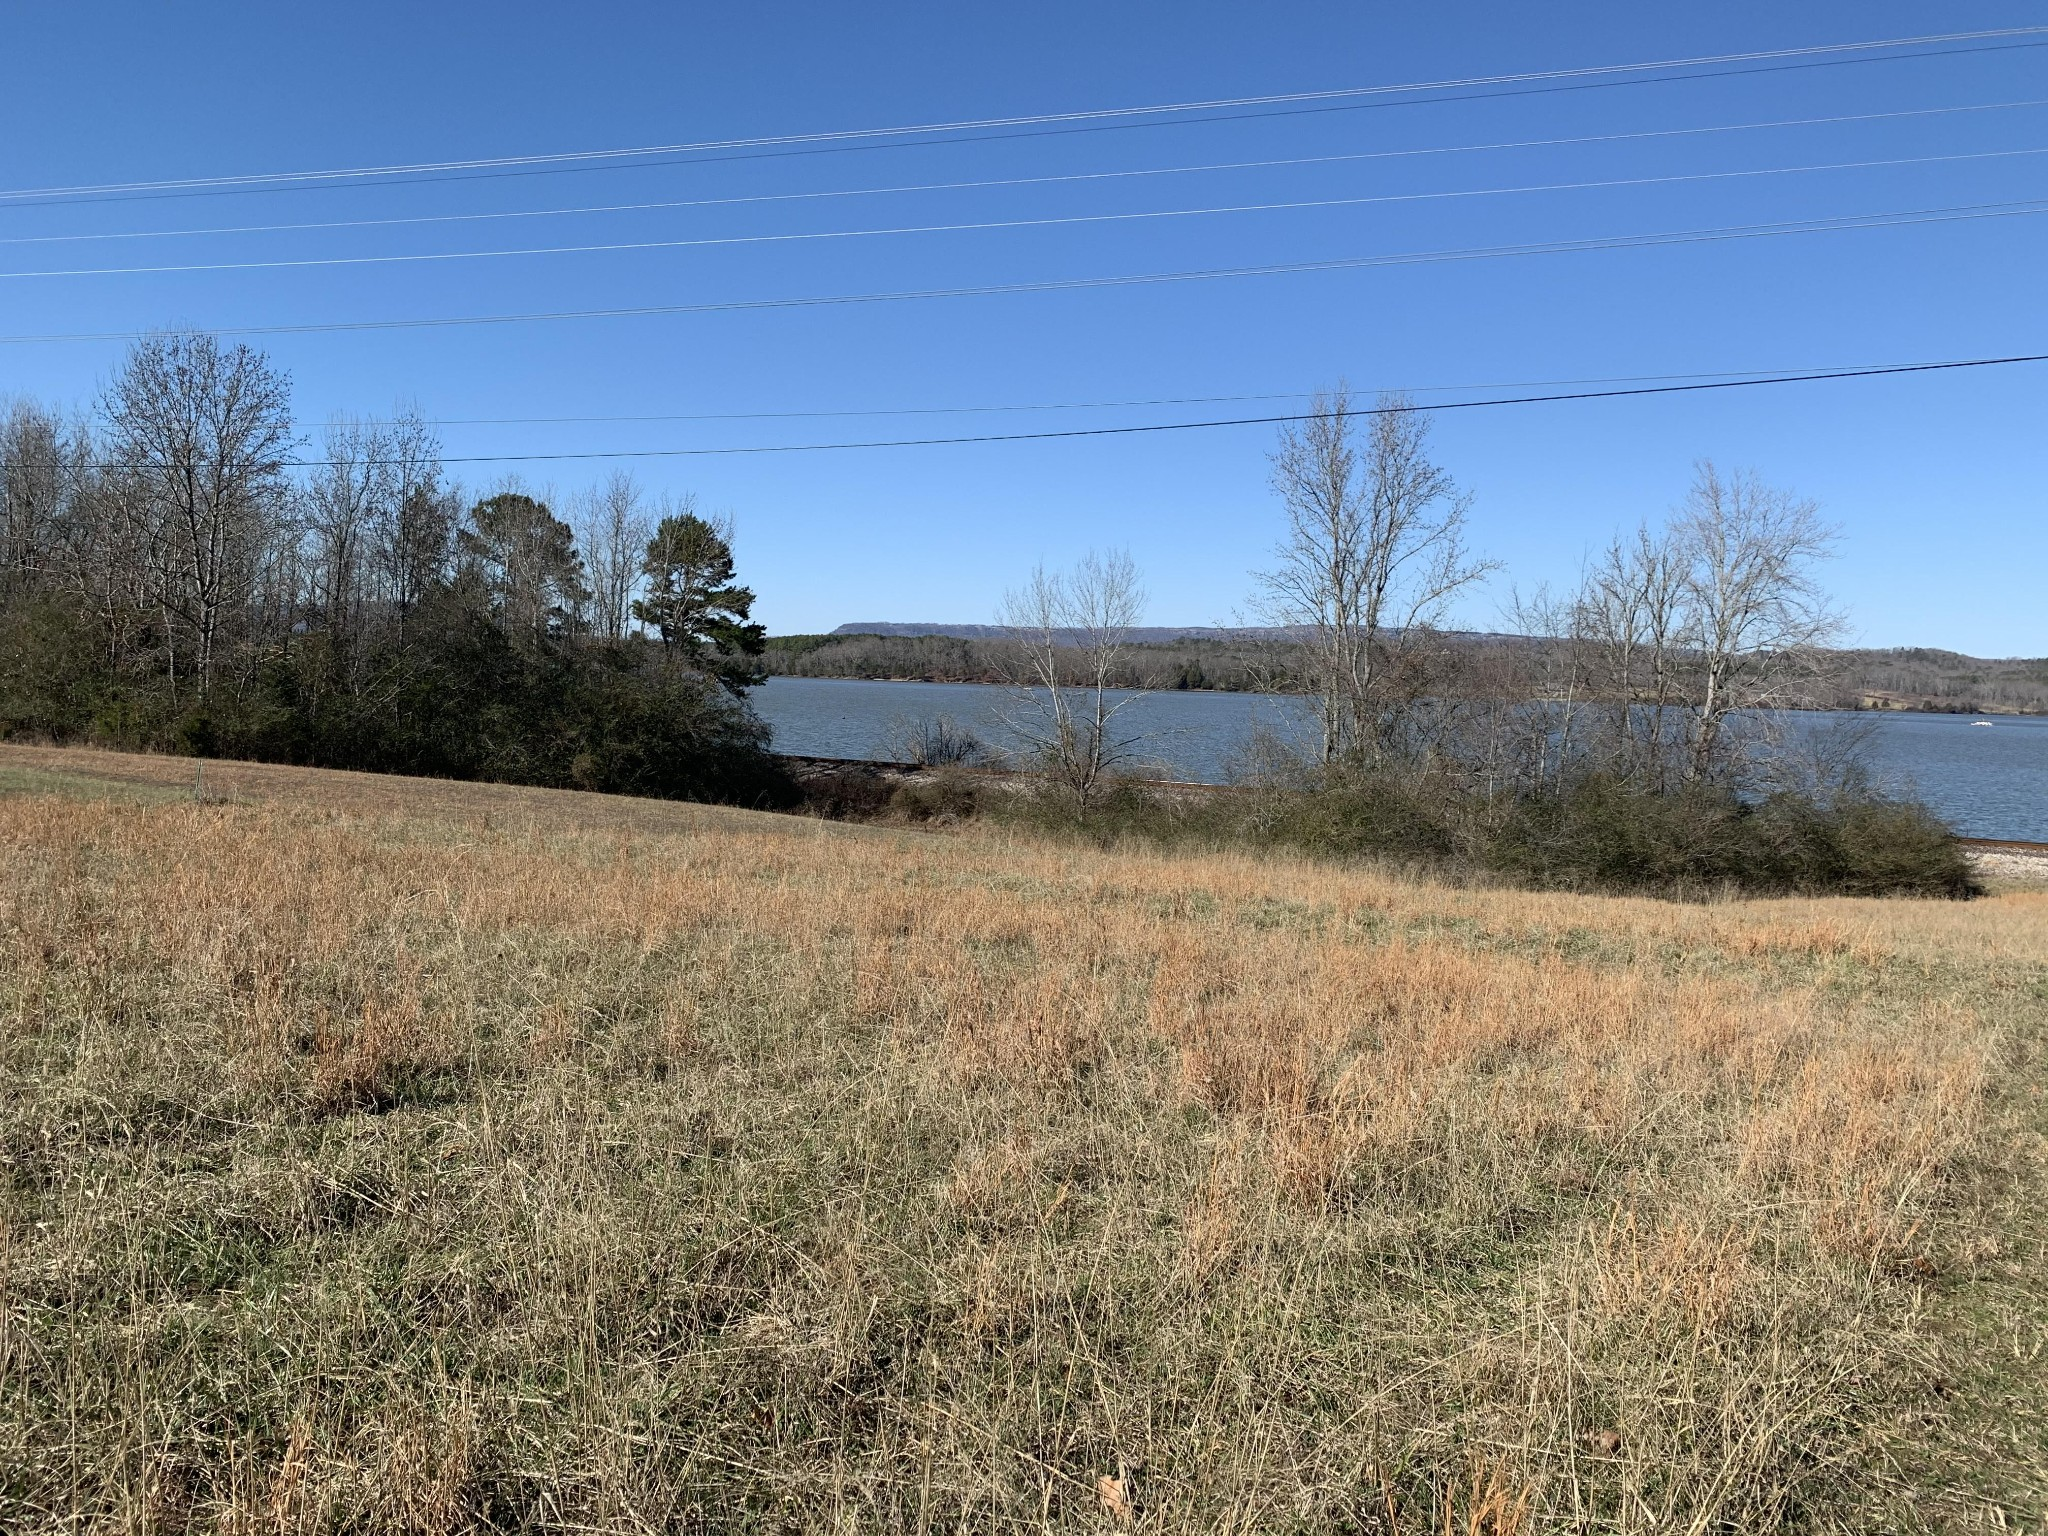 0 Hwy 156 TN, South Pittsburg, TN 37380 - South Pittsburg, TN real estate listing